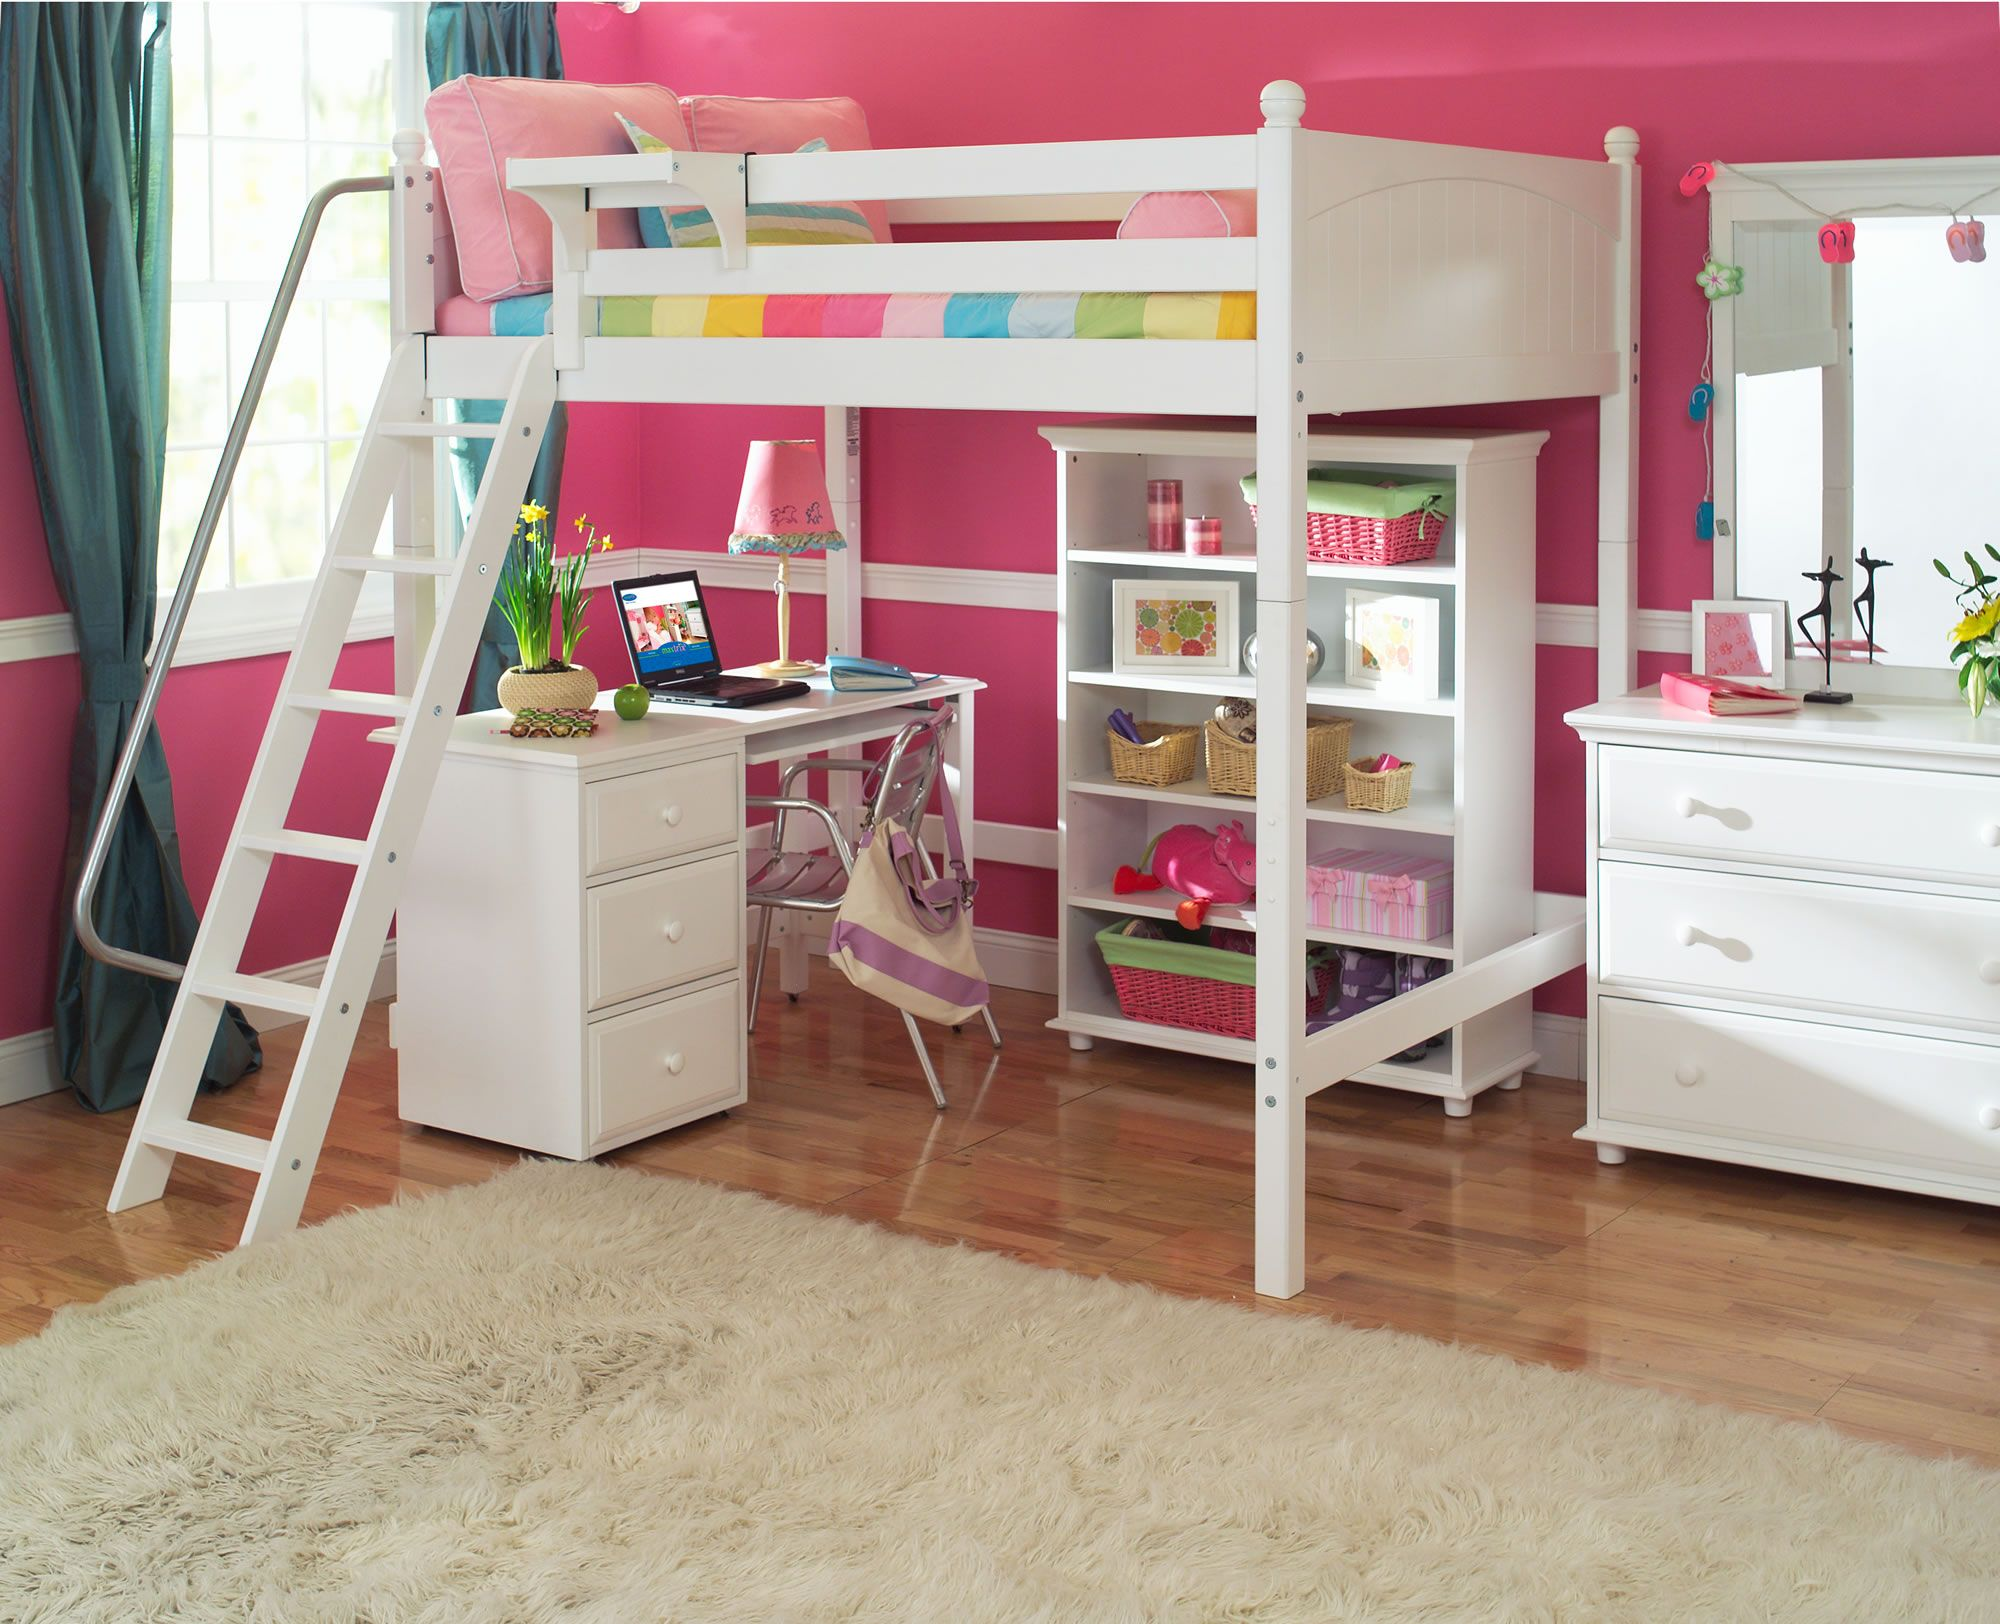 Bunk Bed With Desk Under It Luxury Living Room Set Check More At Http Www Gameintown Com Bunk Bed Wi Kids Loft Beds Girls Loft Bed Bed With Desk Underneath